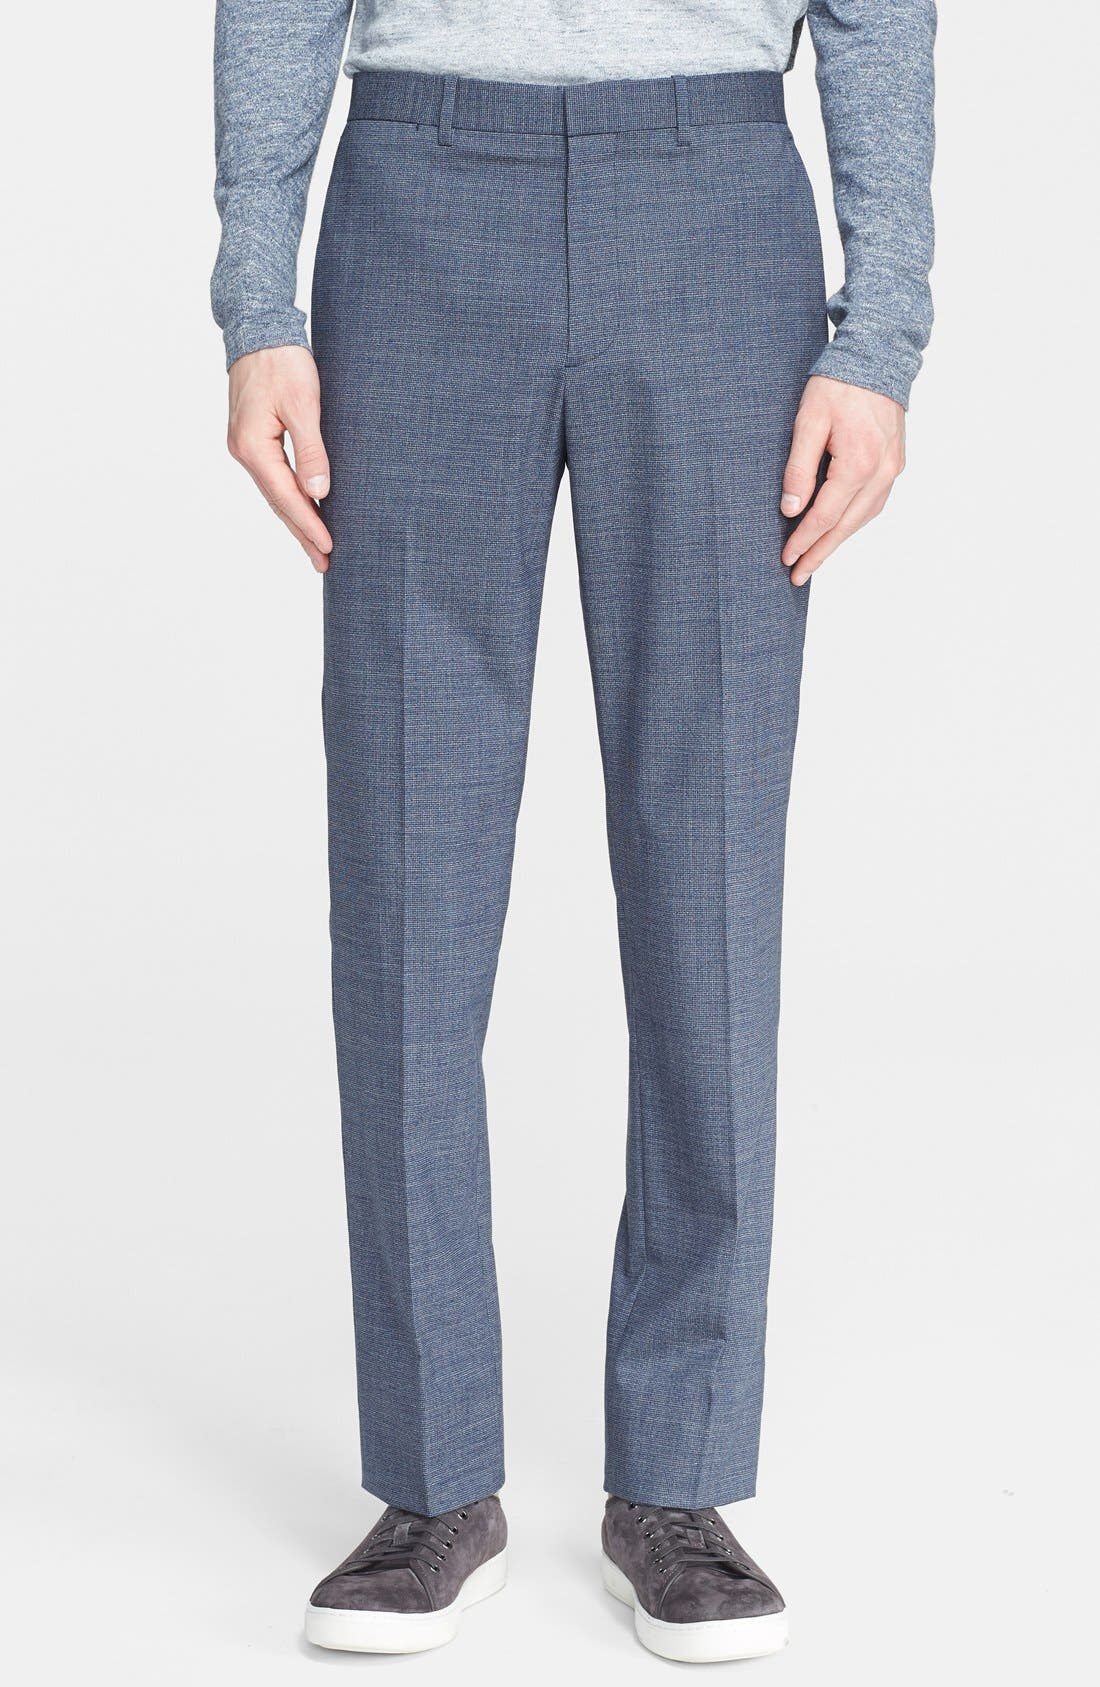 THEORY 'Jake' Stretch Wool Trousers, Main, color, 462